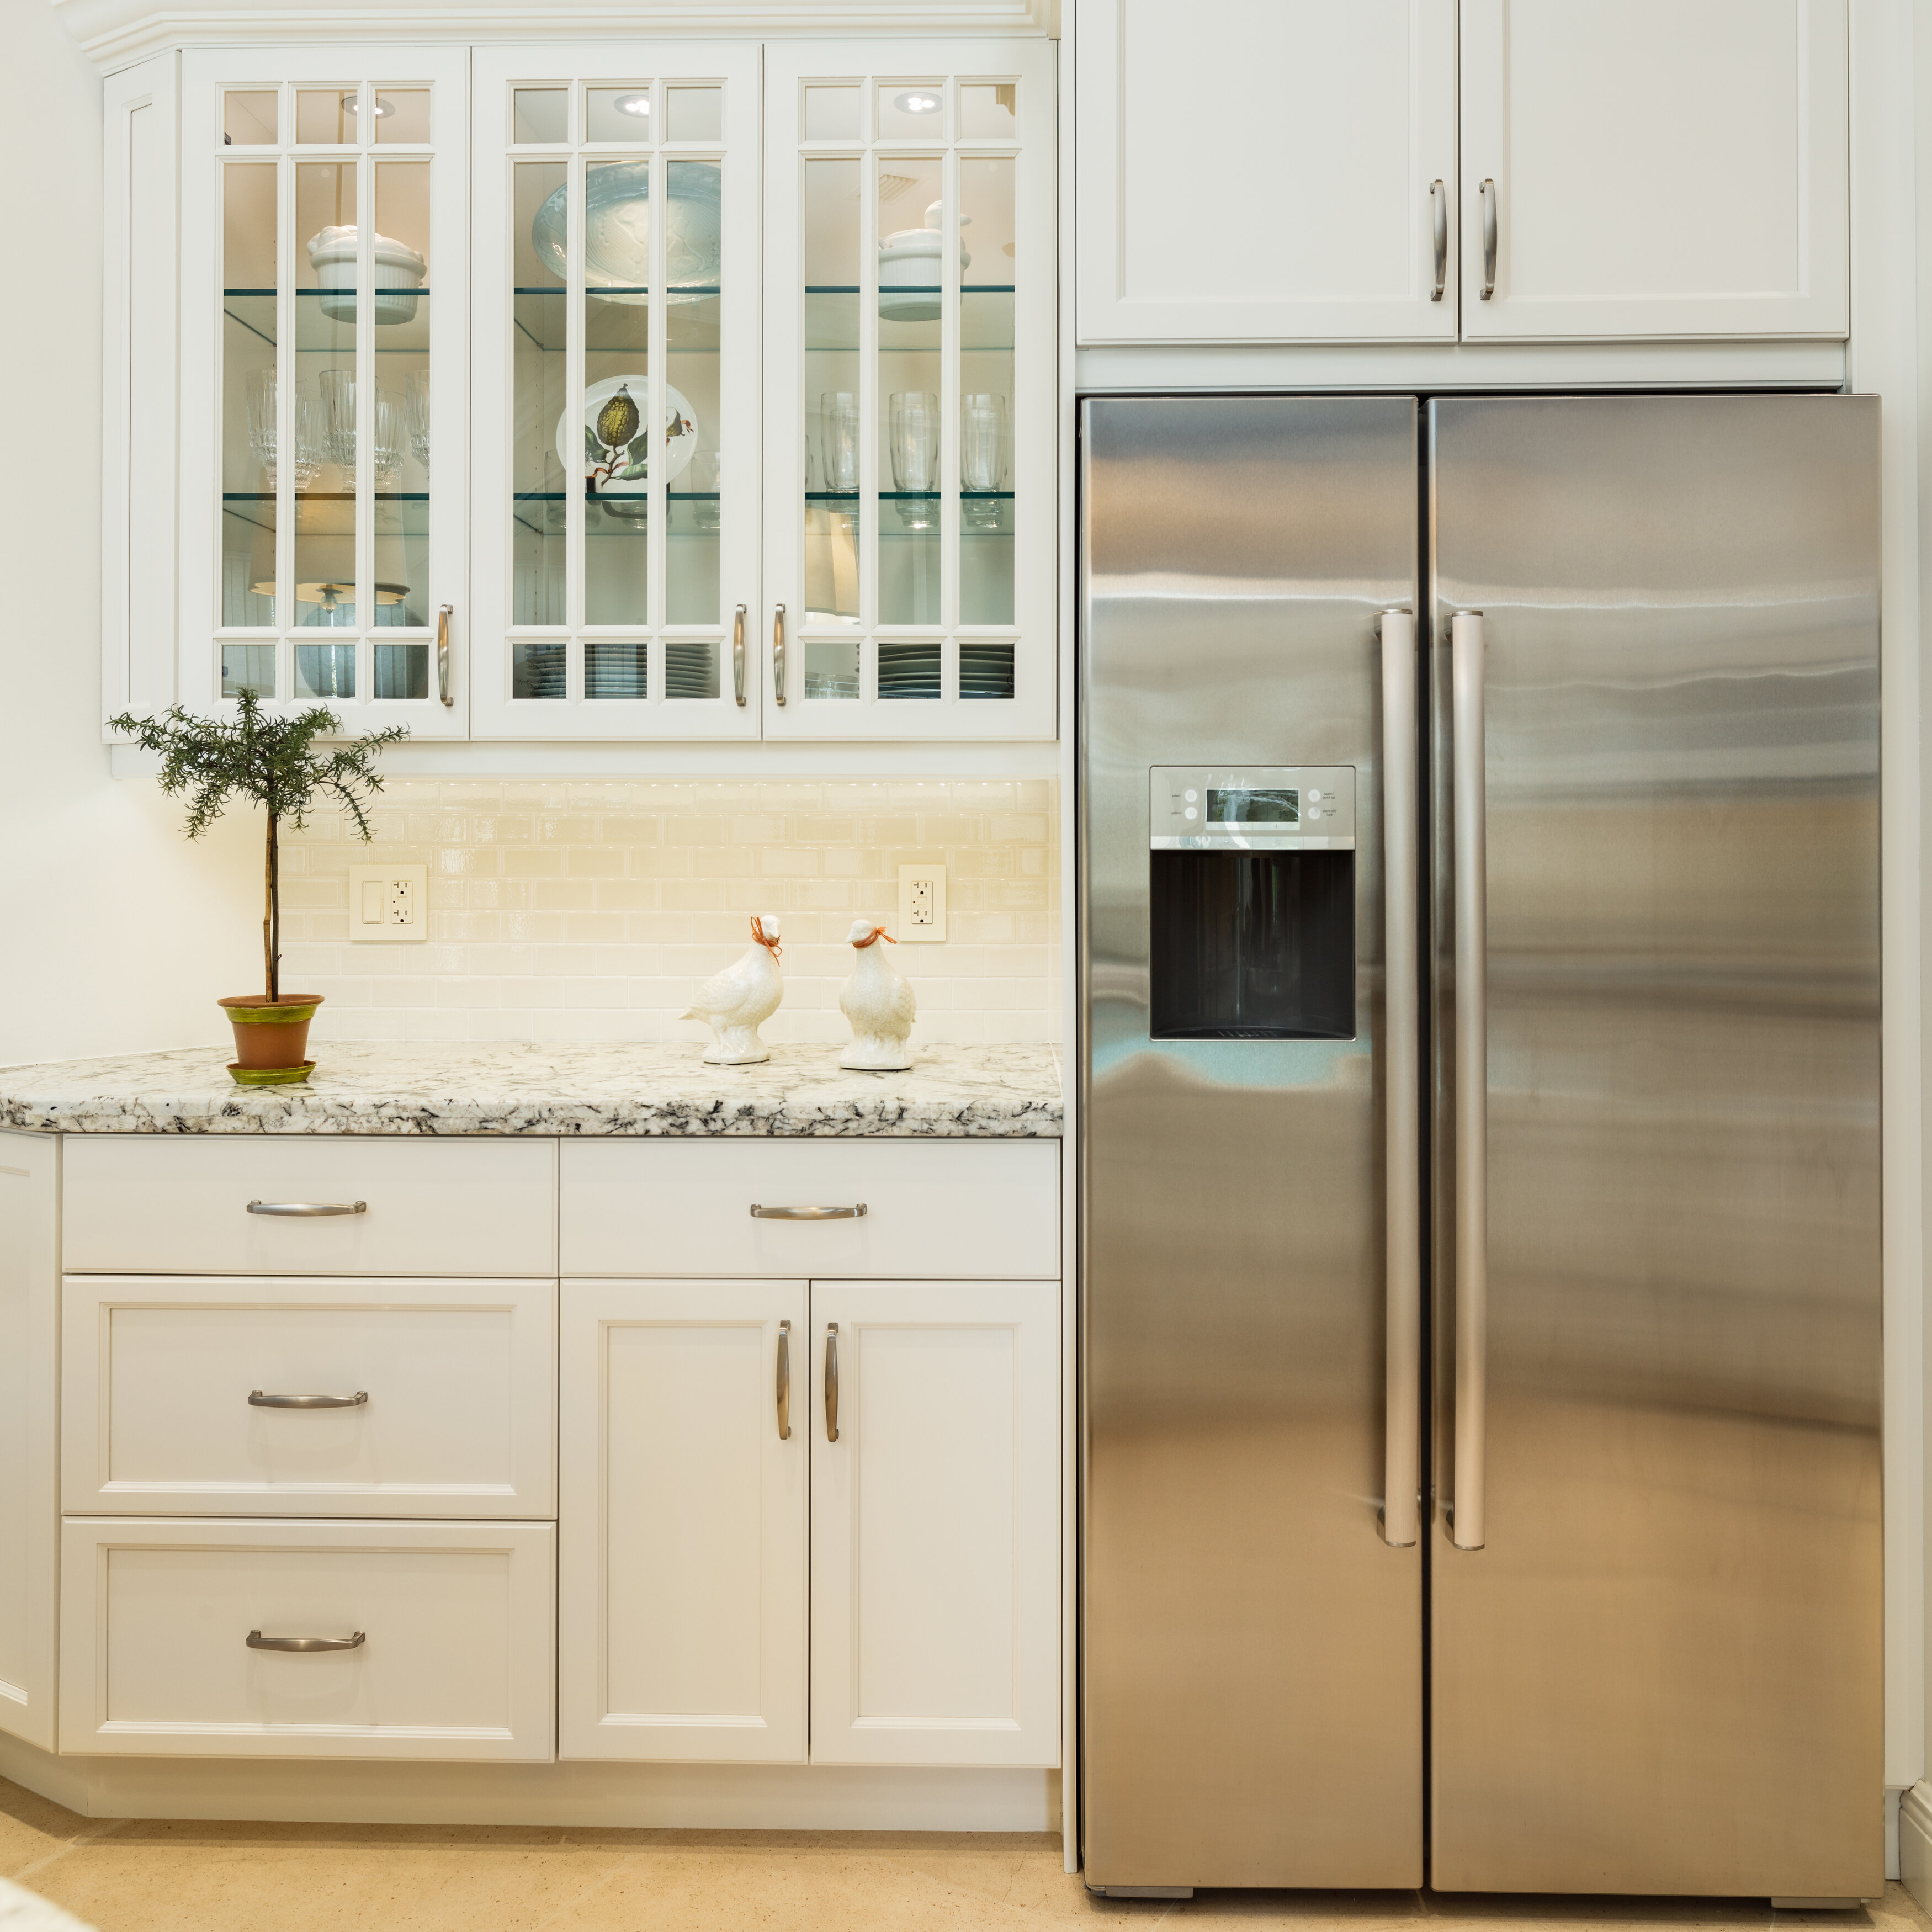 A stainless steel refrigerator near a countertop with decorative plant.